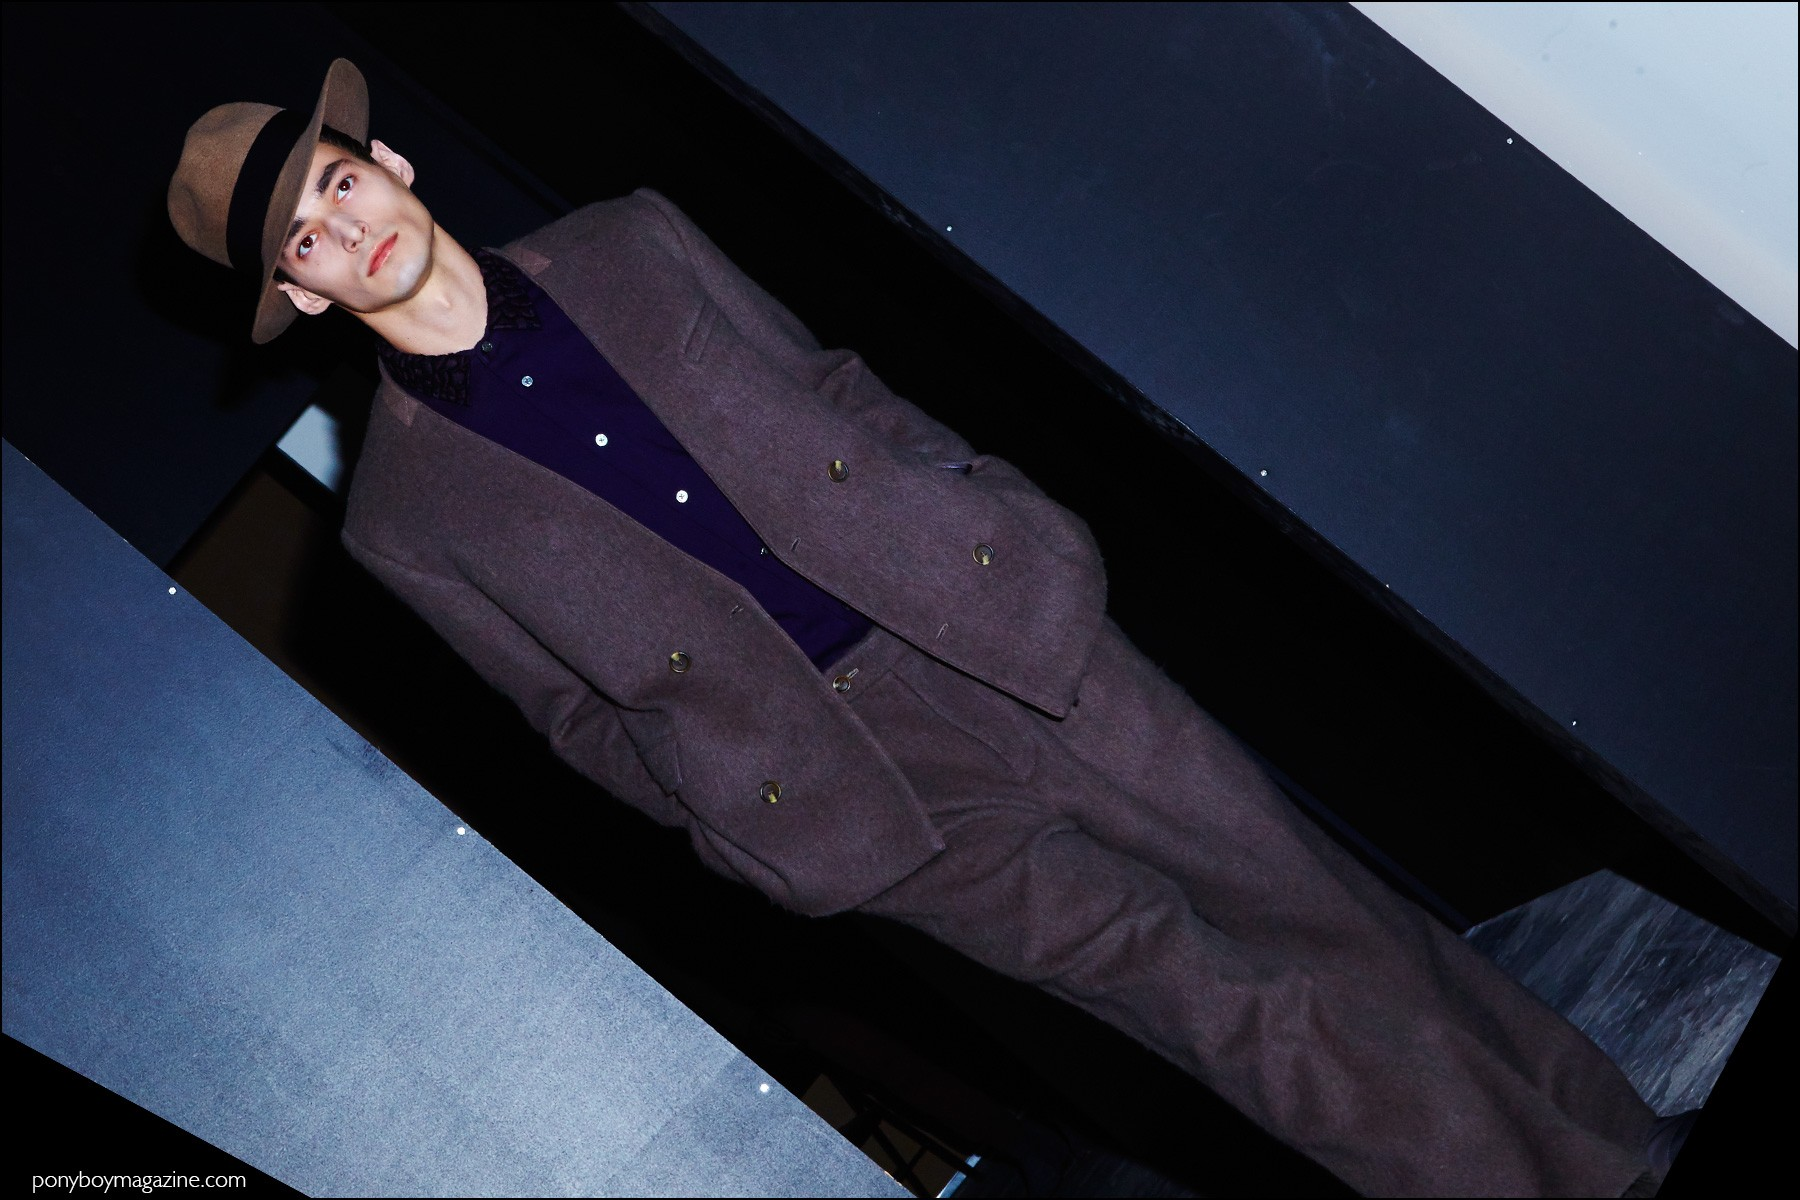 A suit and fedora worn backstage by a male model, for Robert Geller F/W16 menswear show. Photography by Alexander Thompson for Ponyboy magazine NY.